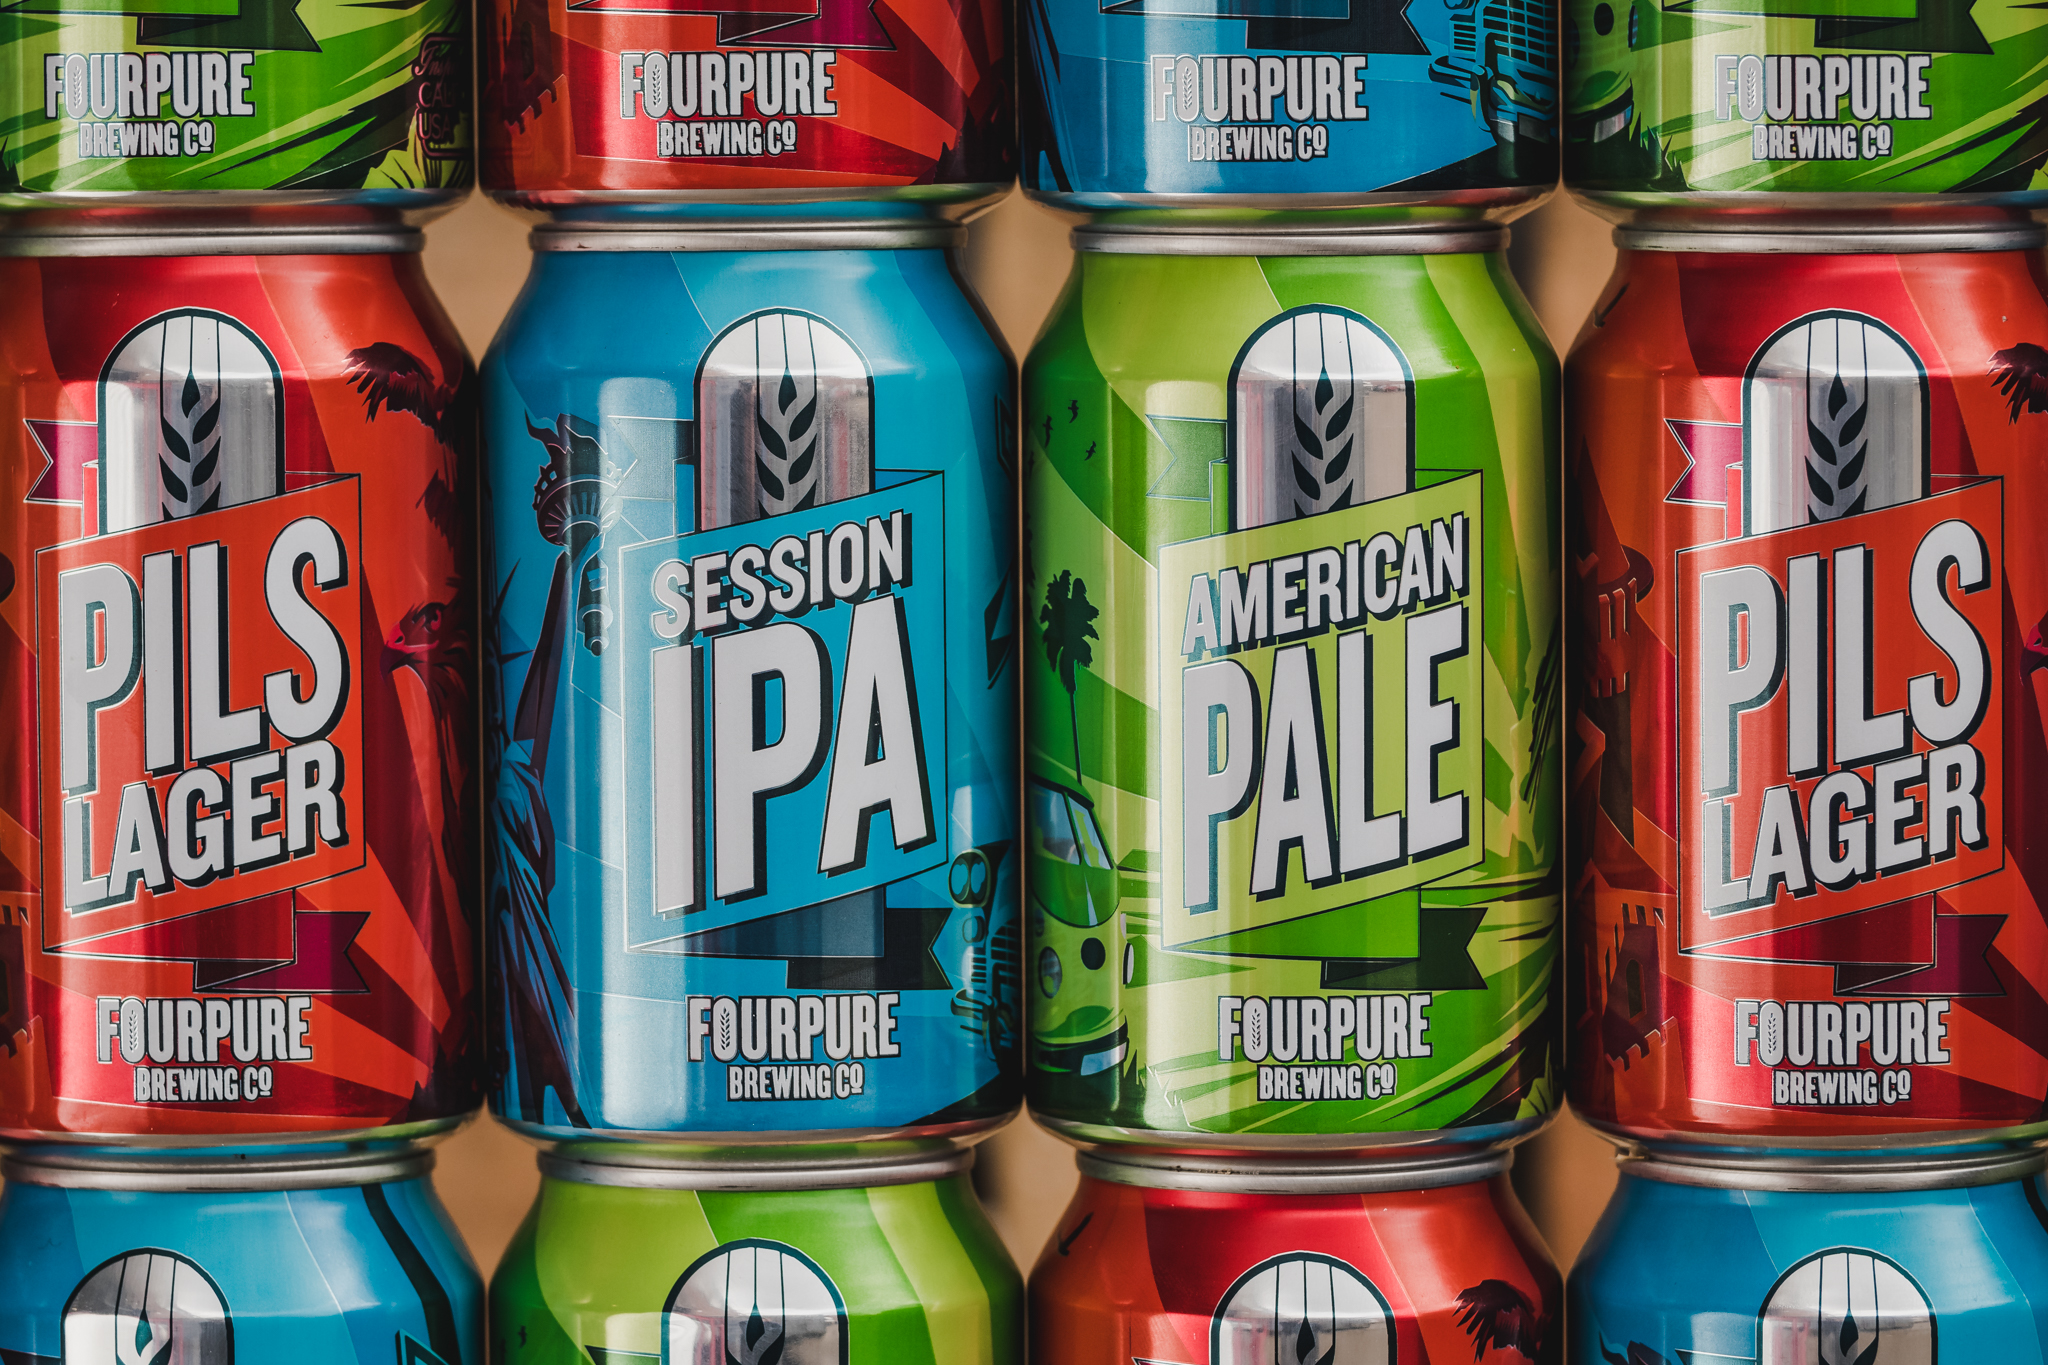 Fourpure Brewing Co. Brewery in South London Club Card 4.jpg